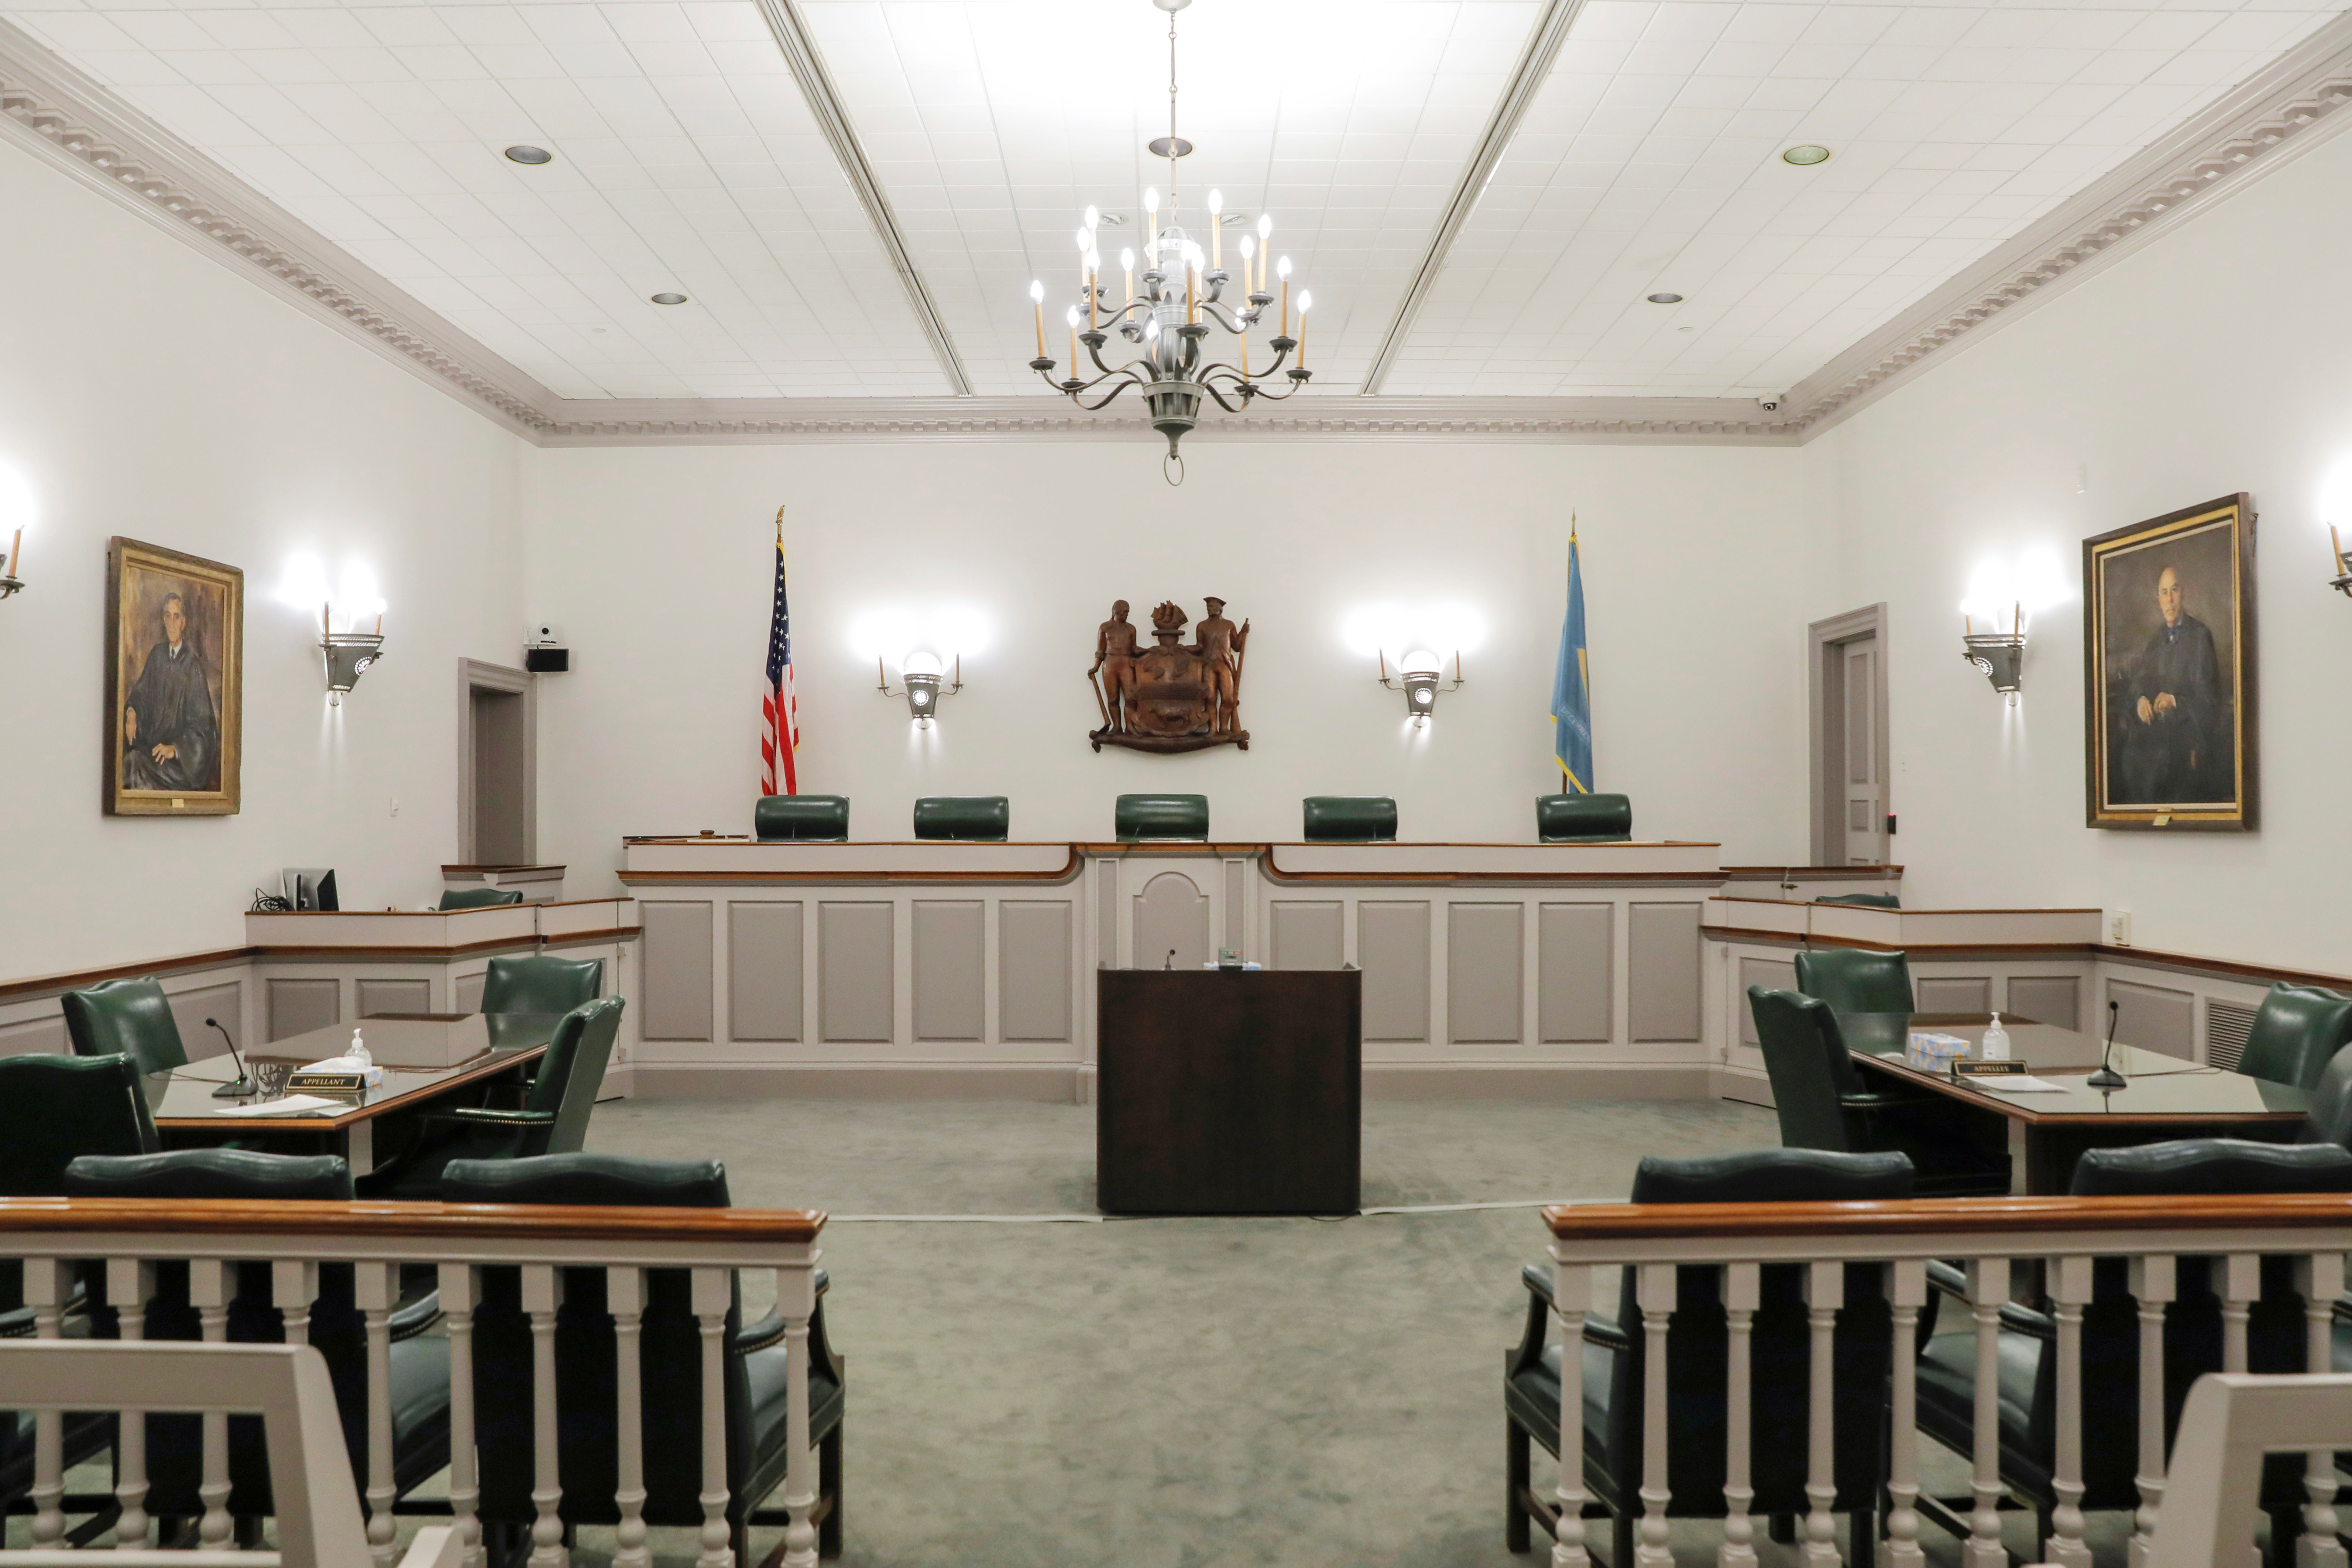 A courtroom is seen at the Delaware Supreme Court in Dover, Delaware, U.S., June 10, 2021. REUTERS/Andrew Kelly